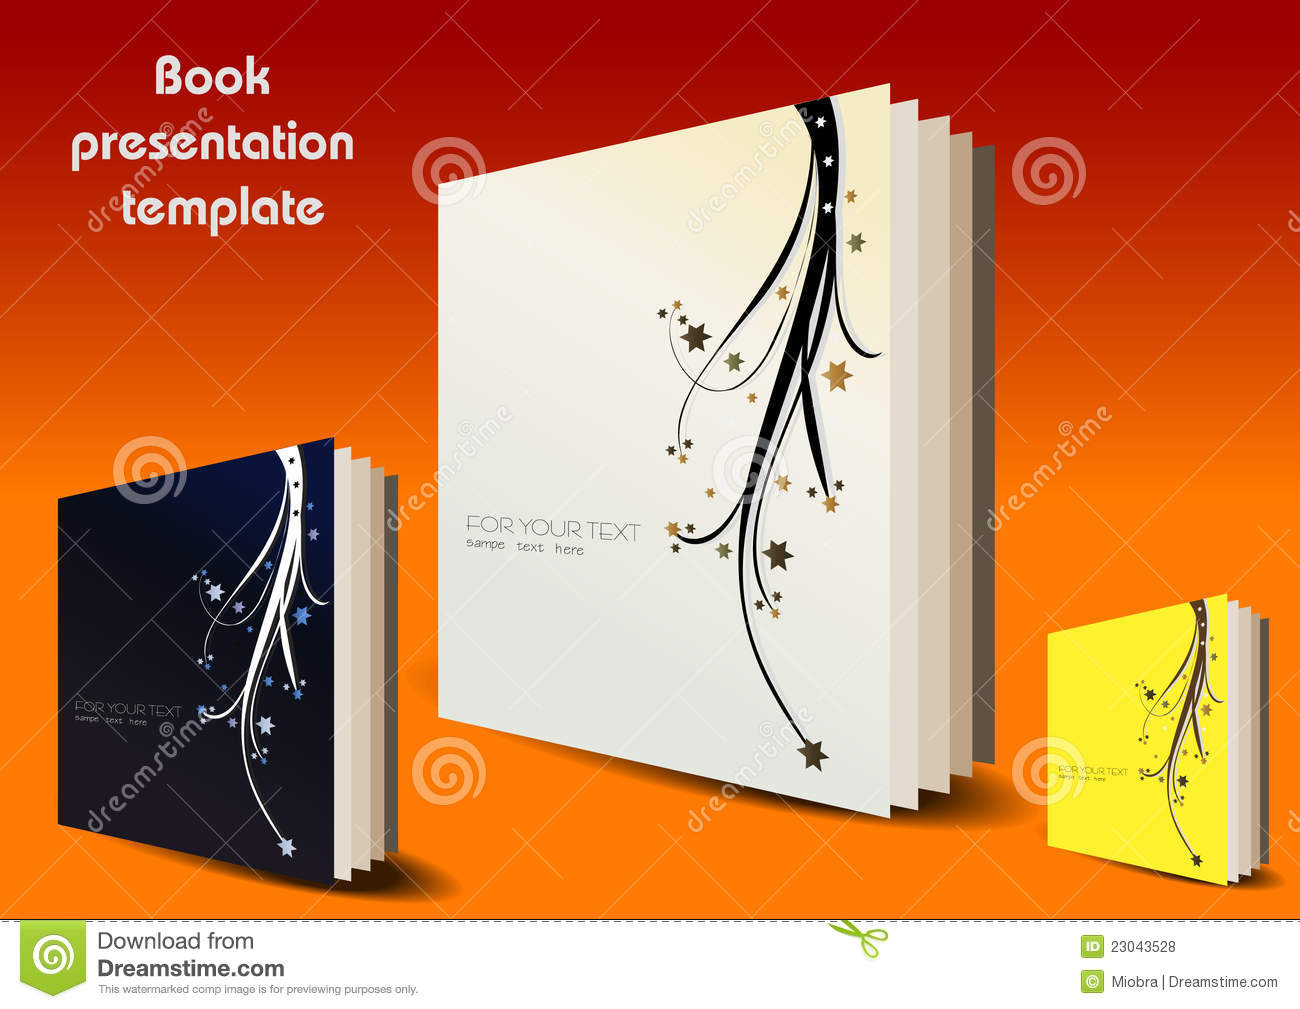 book presentation template stock vector  illustration of health